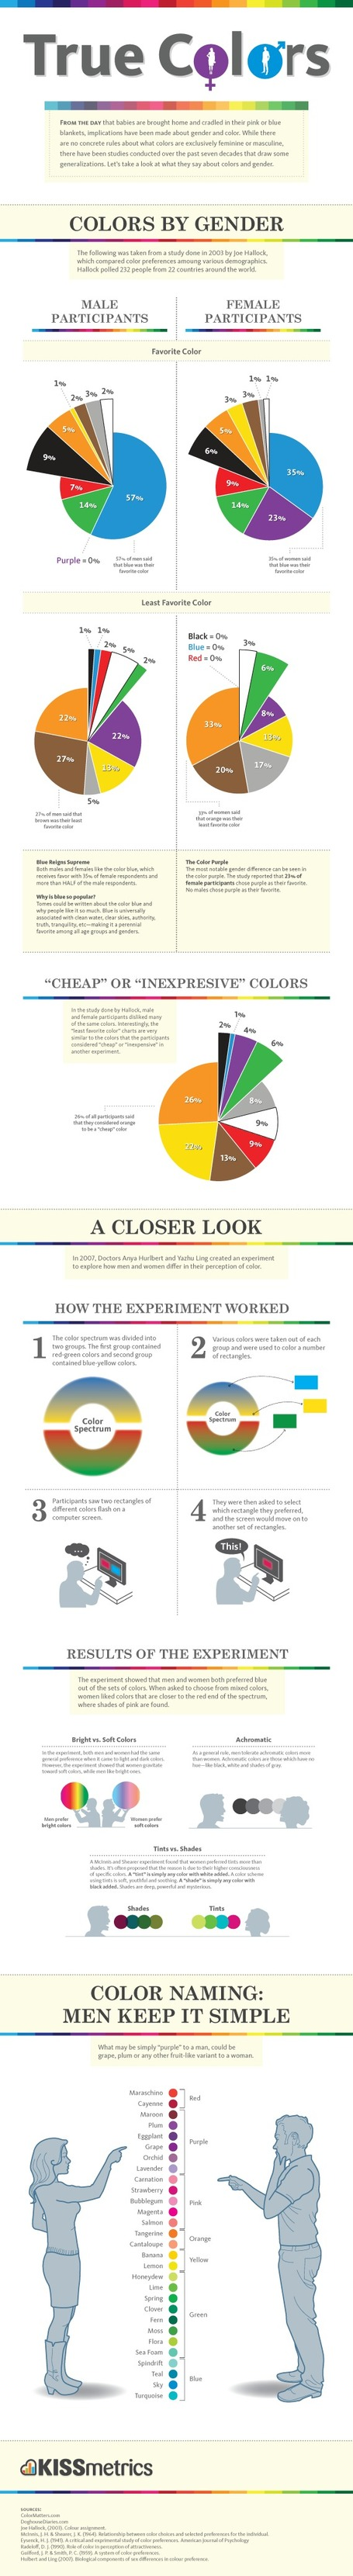 Color Is Master Of Us All: Color Preference By Gender [Infographic] | BI Revolution | Scoop.it